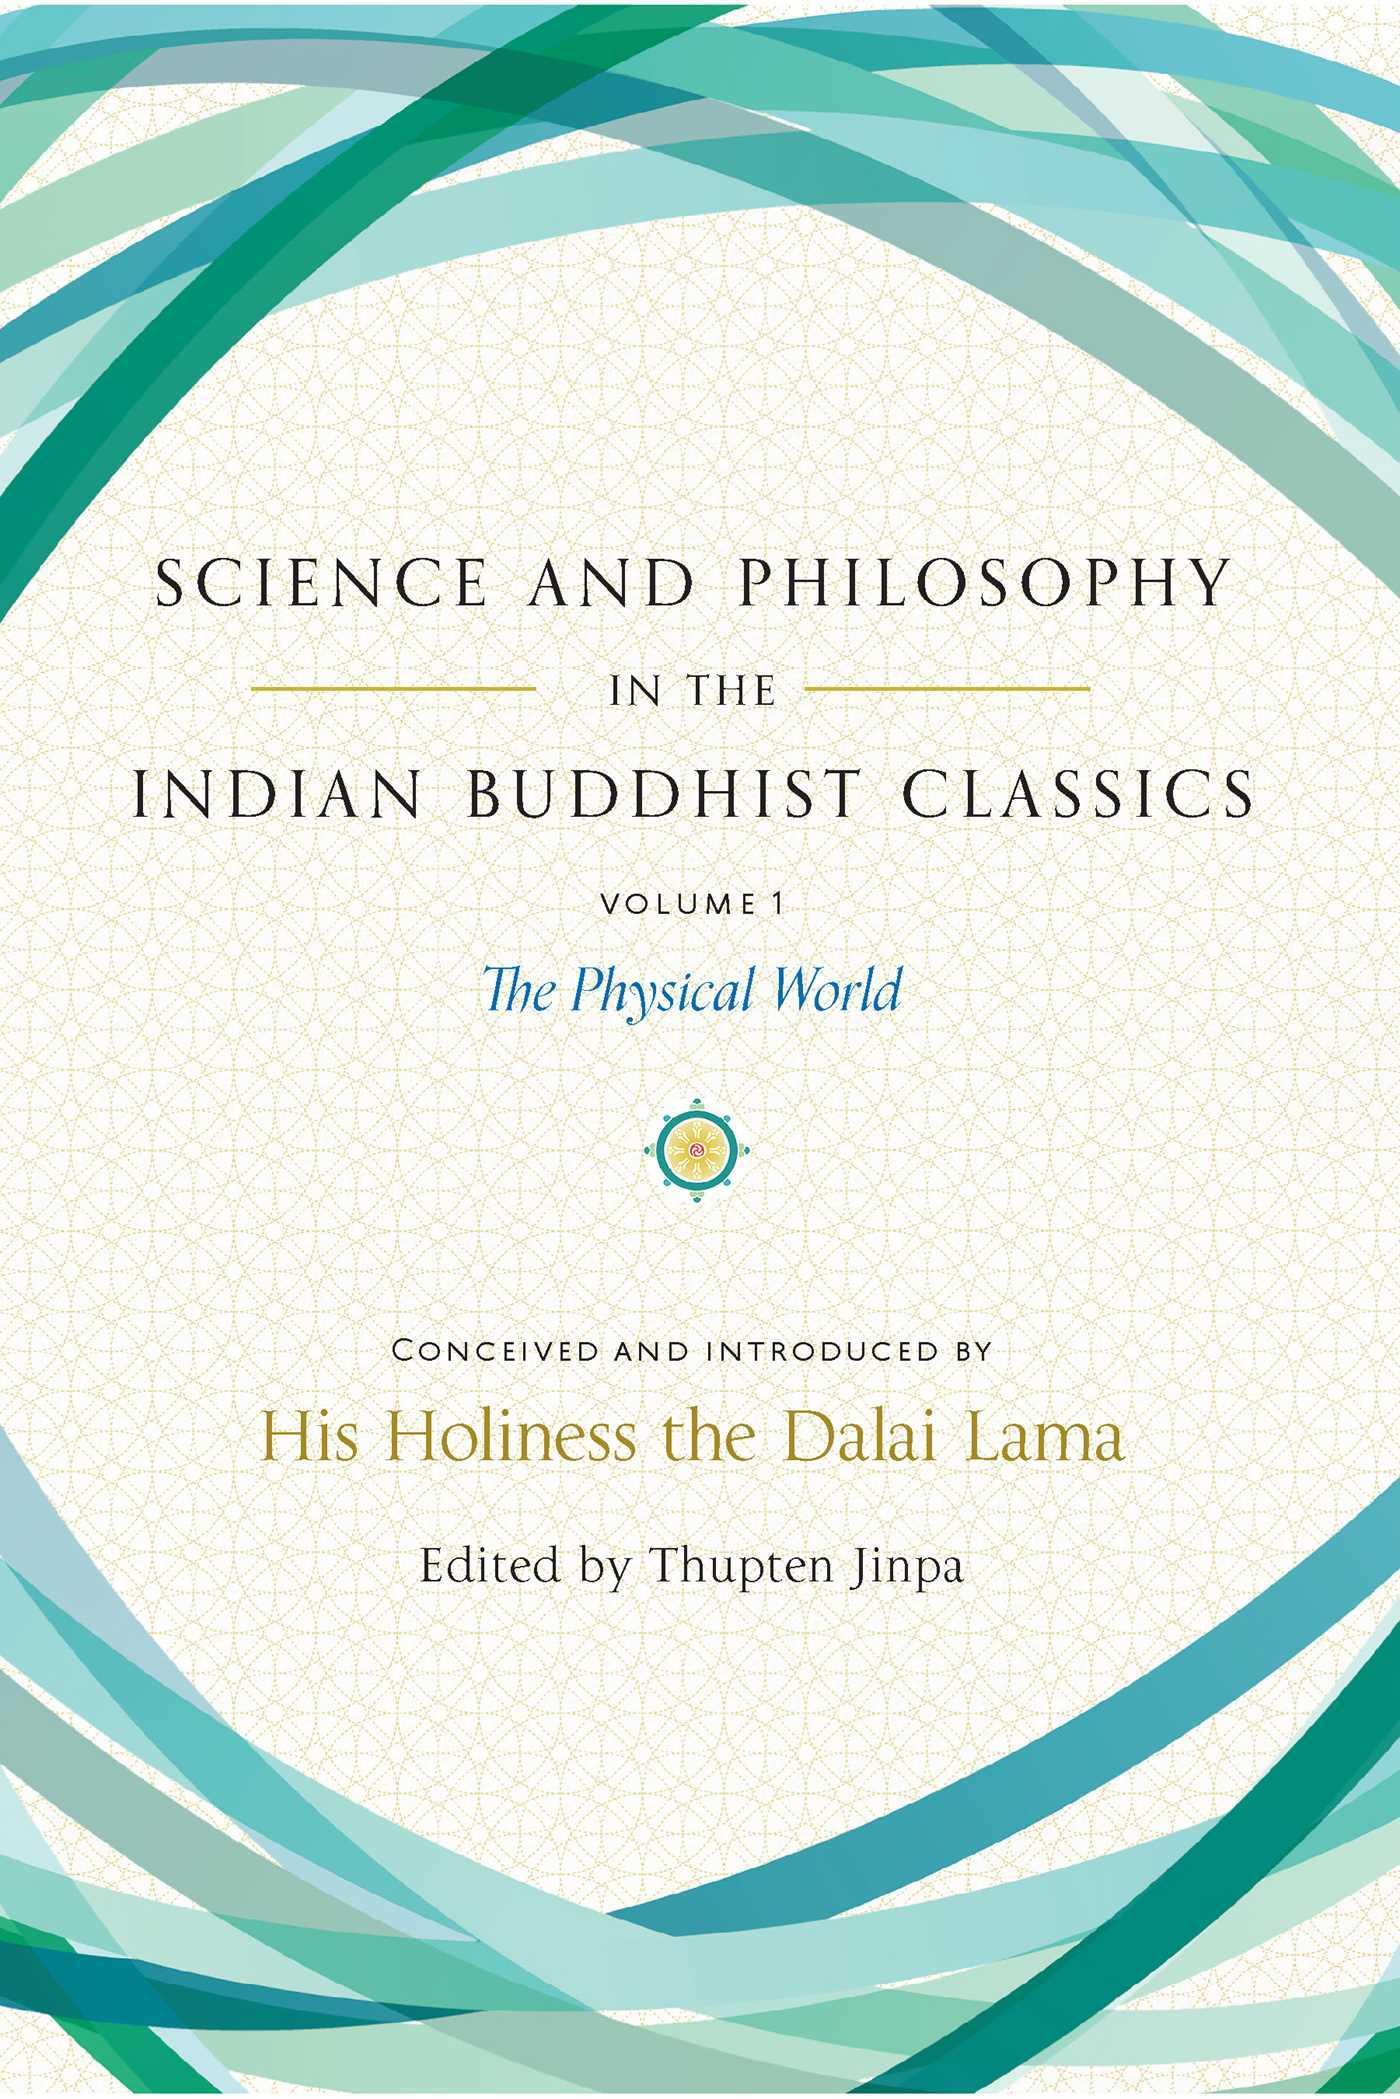 Science and Philosophy in the Indian Buddhist Classics The Physical World